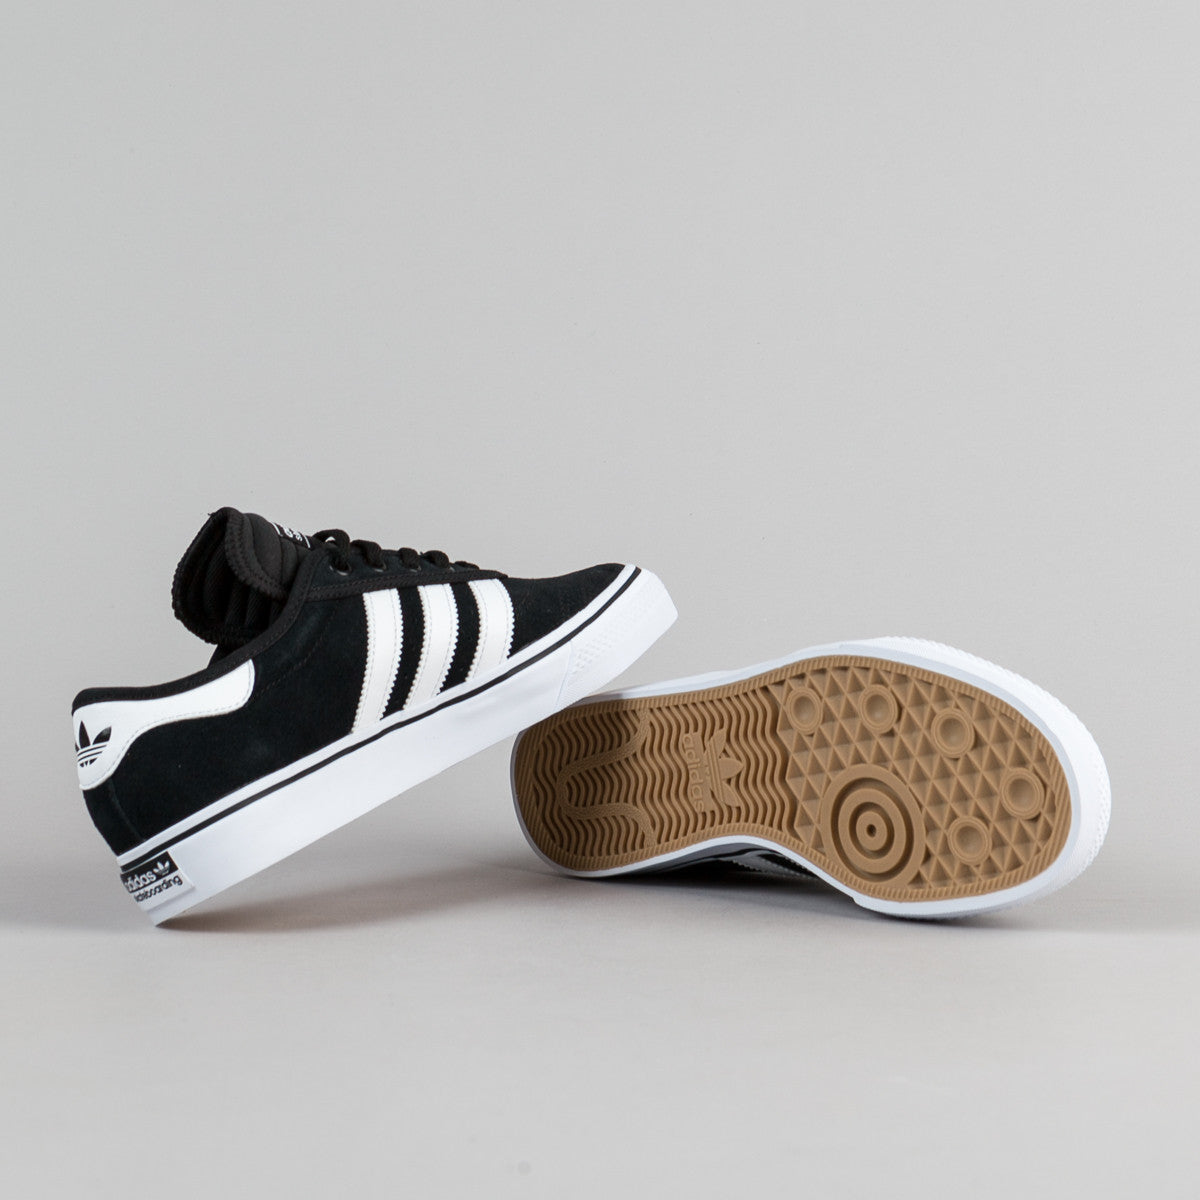 Adidas Adi-Ease Premiere ADV Shoes - Core Black / White / White